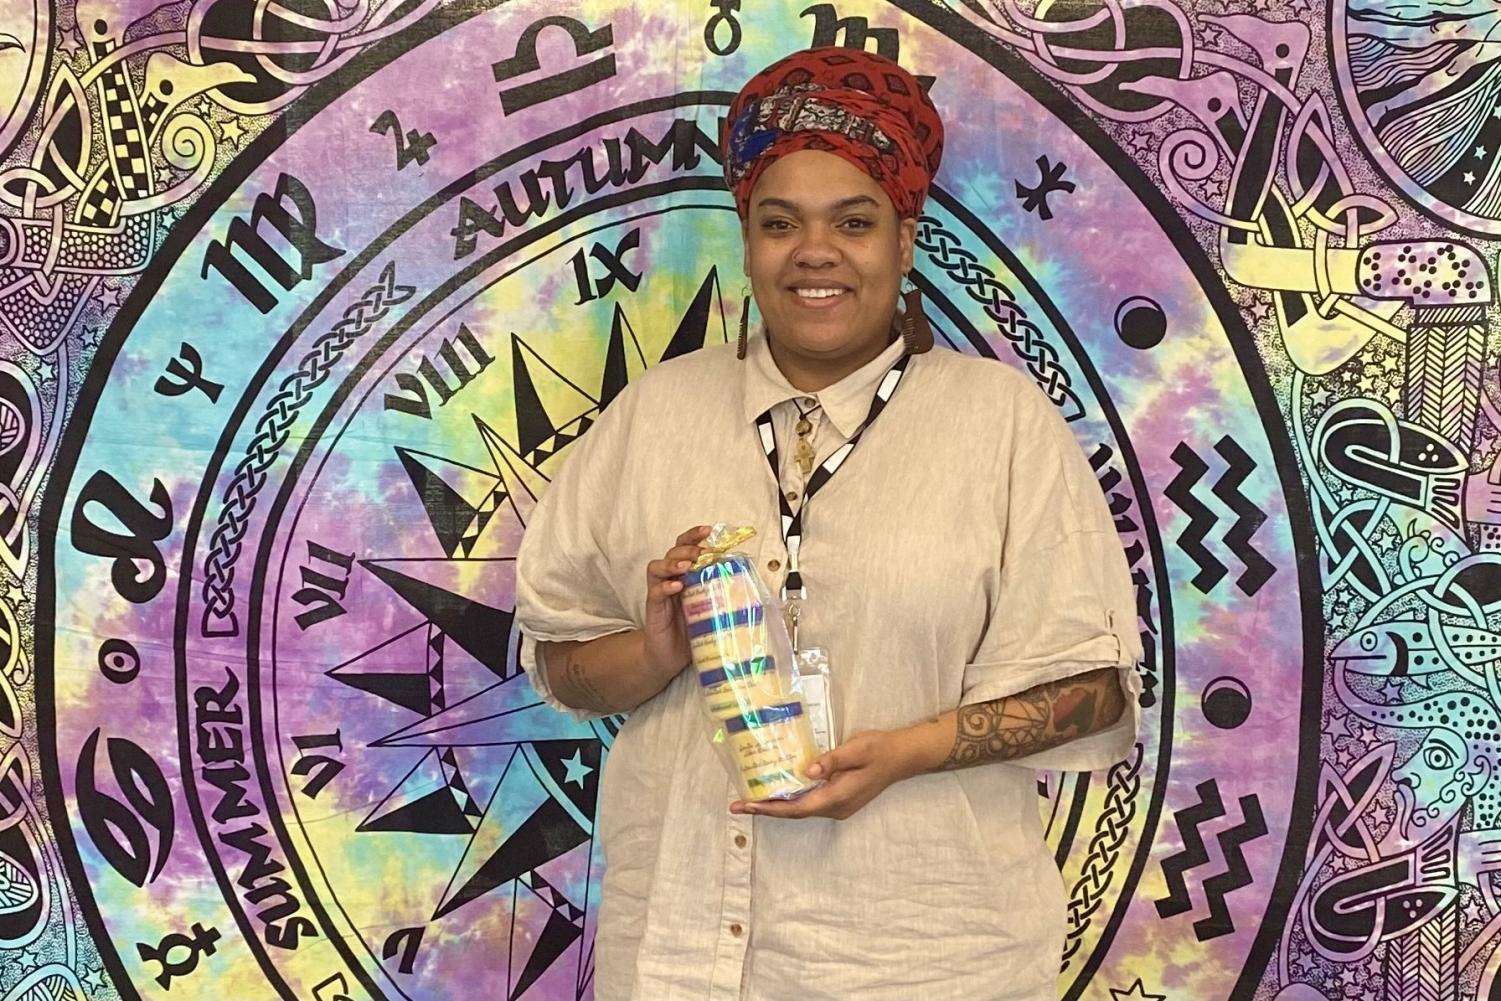 Ms. Riddles showcases her shea butter business.